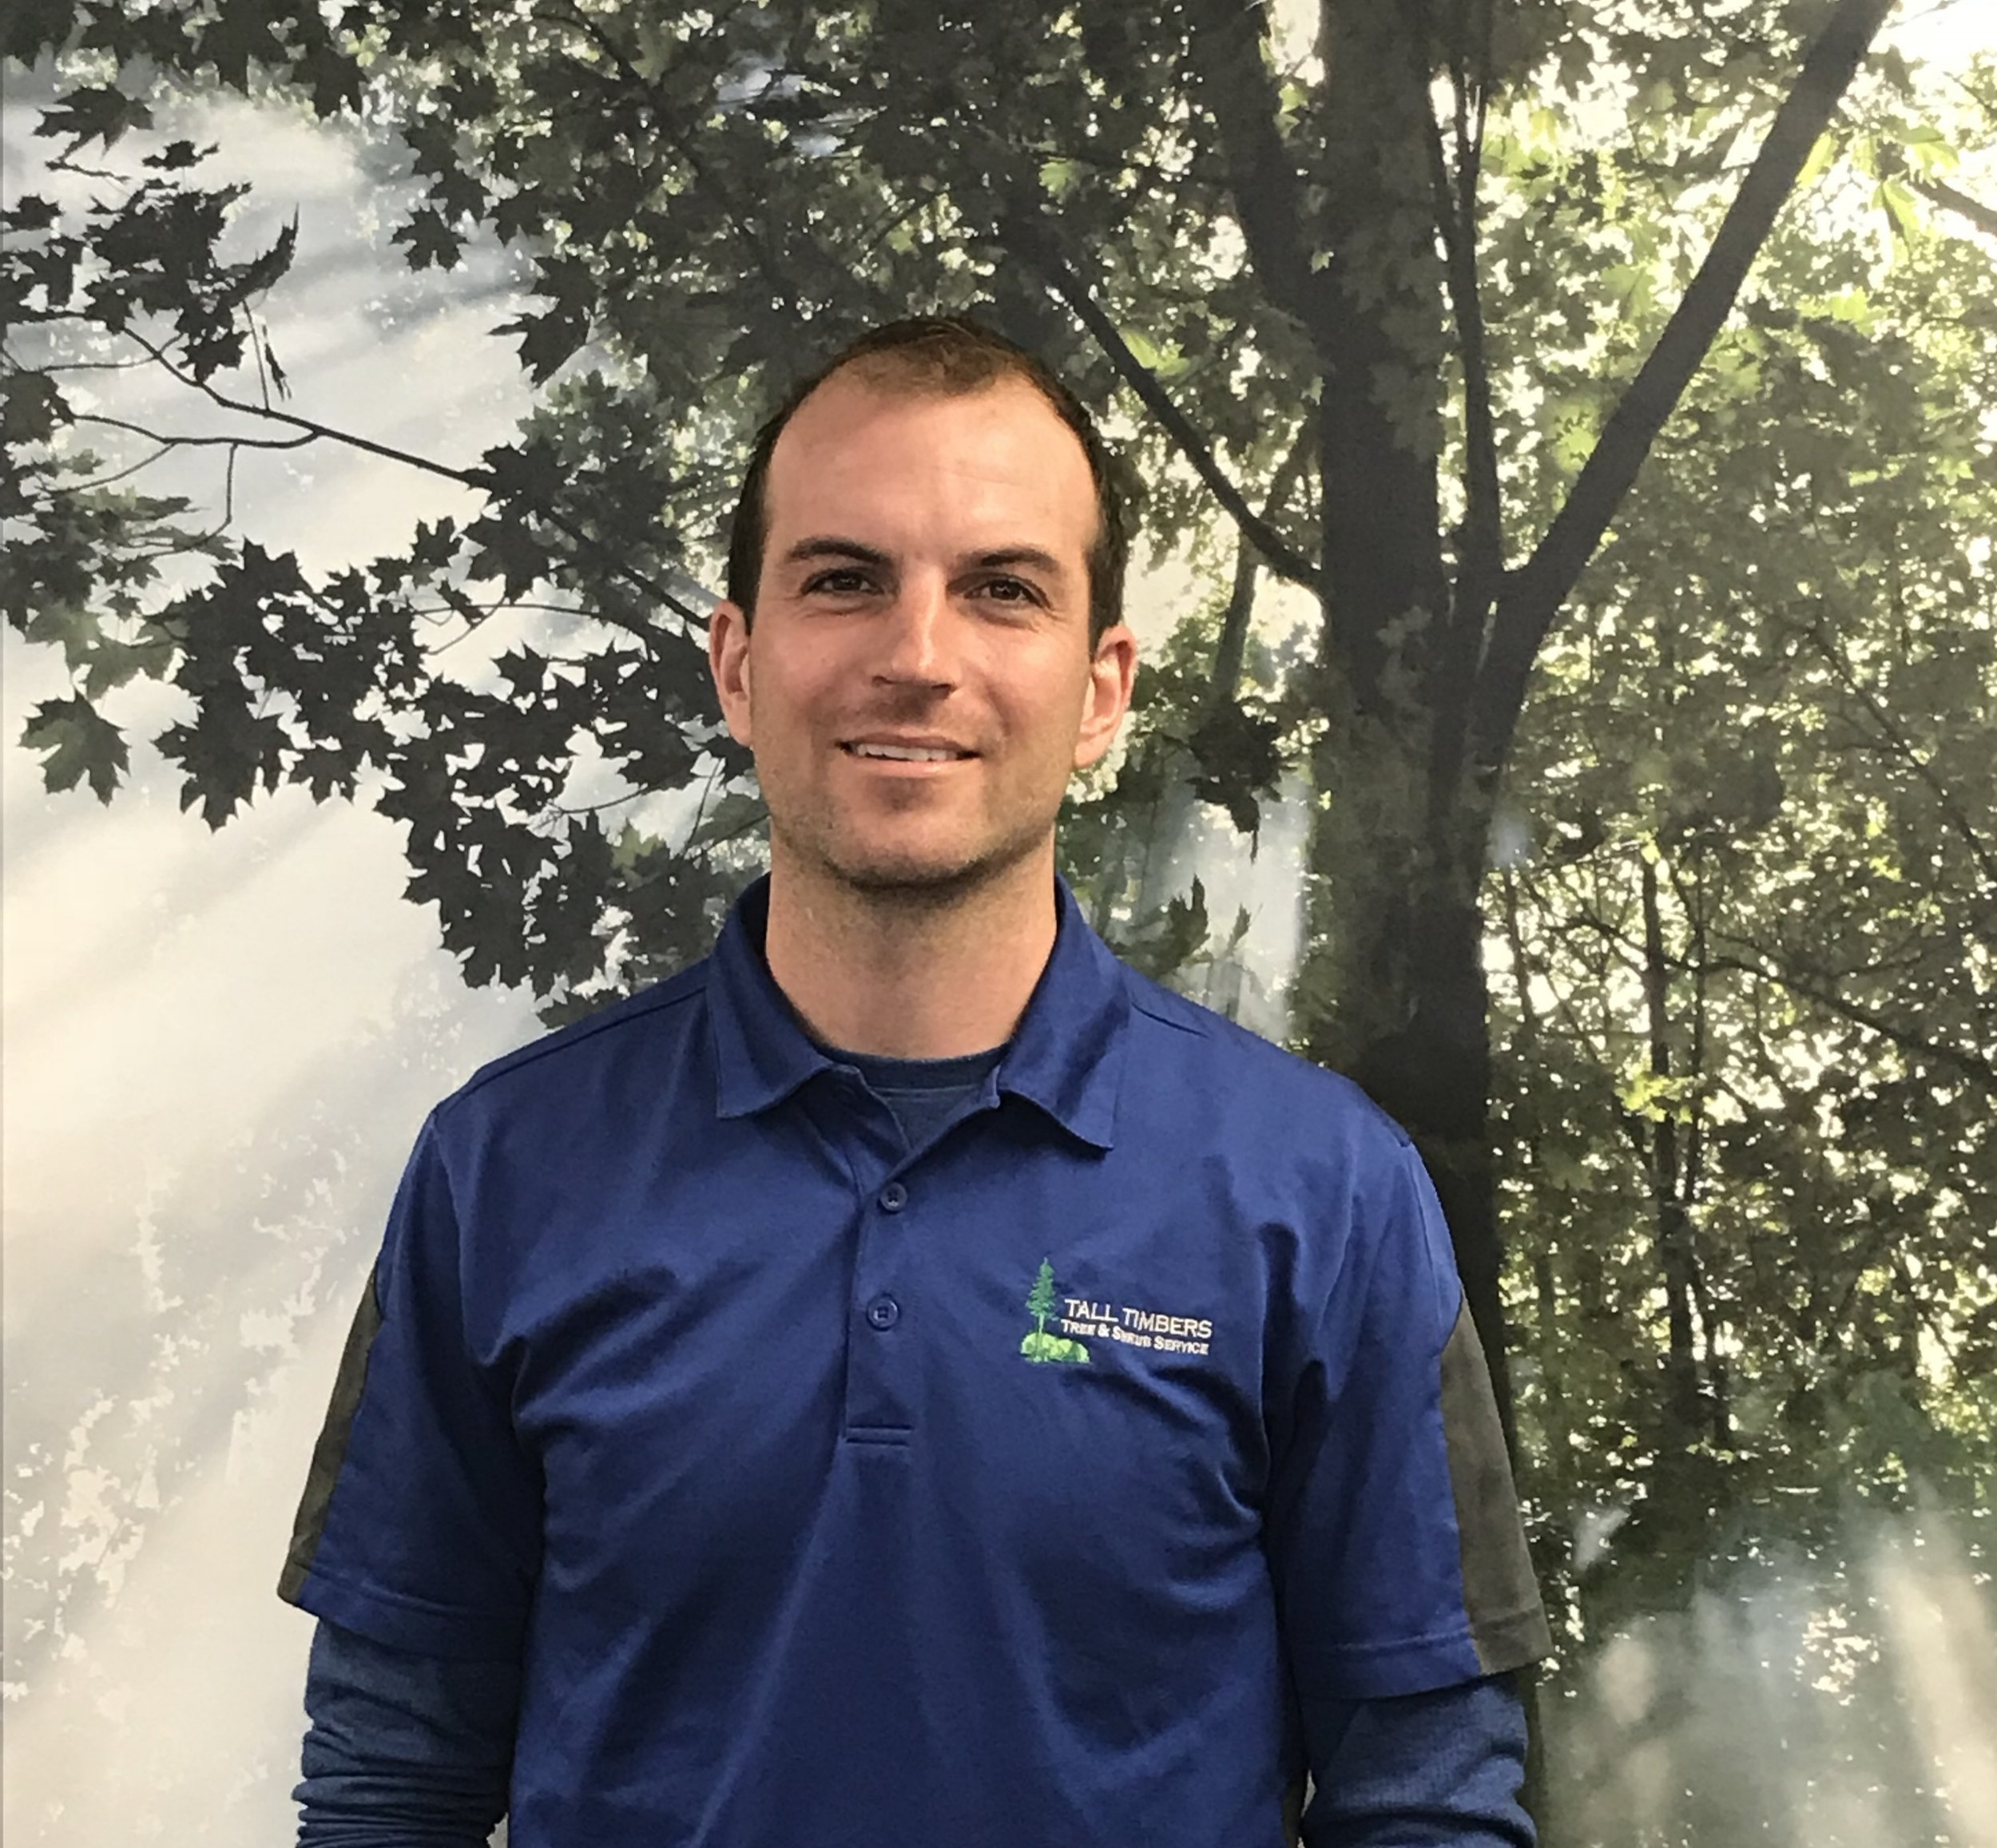 Brad Williams - Operations ManagerISA Certified ArboristPesticide License - CO Dept of Ag., QSBrad has a range of experience working with trees on both golf courses and in landscape settings. Brad has a Bachelor's degree in Soil Science from the University of Wisconsin and a Master's degree in Environmental Horticulture from the University of Florida. He loves to share his knowledge of trees and shrubs with all of our customers. When he's not at work he loves to be outside, mountain biking, climbing, or skiing.